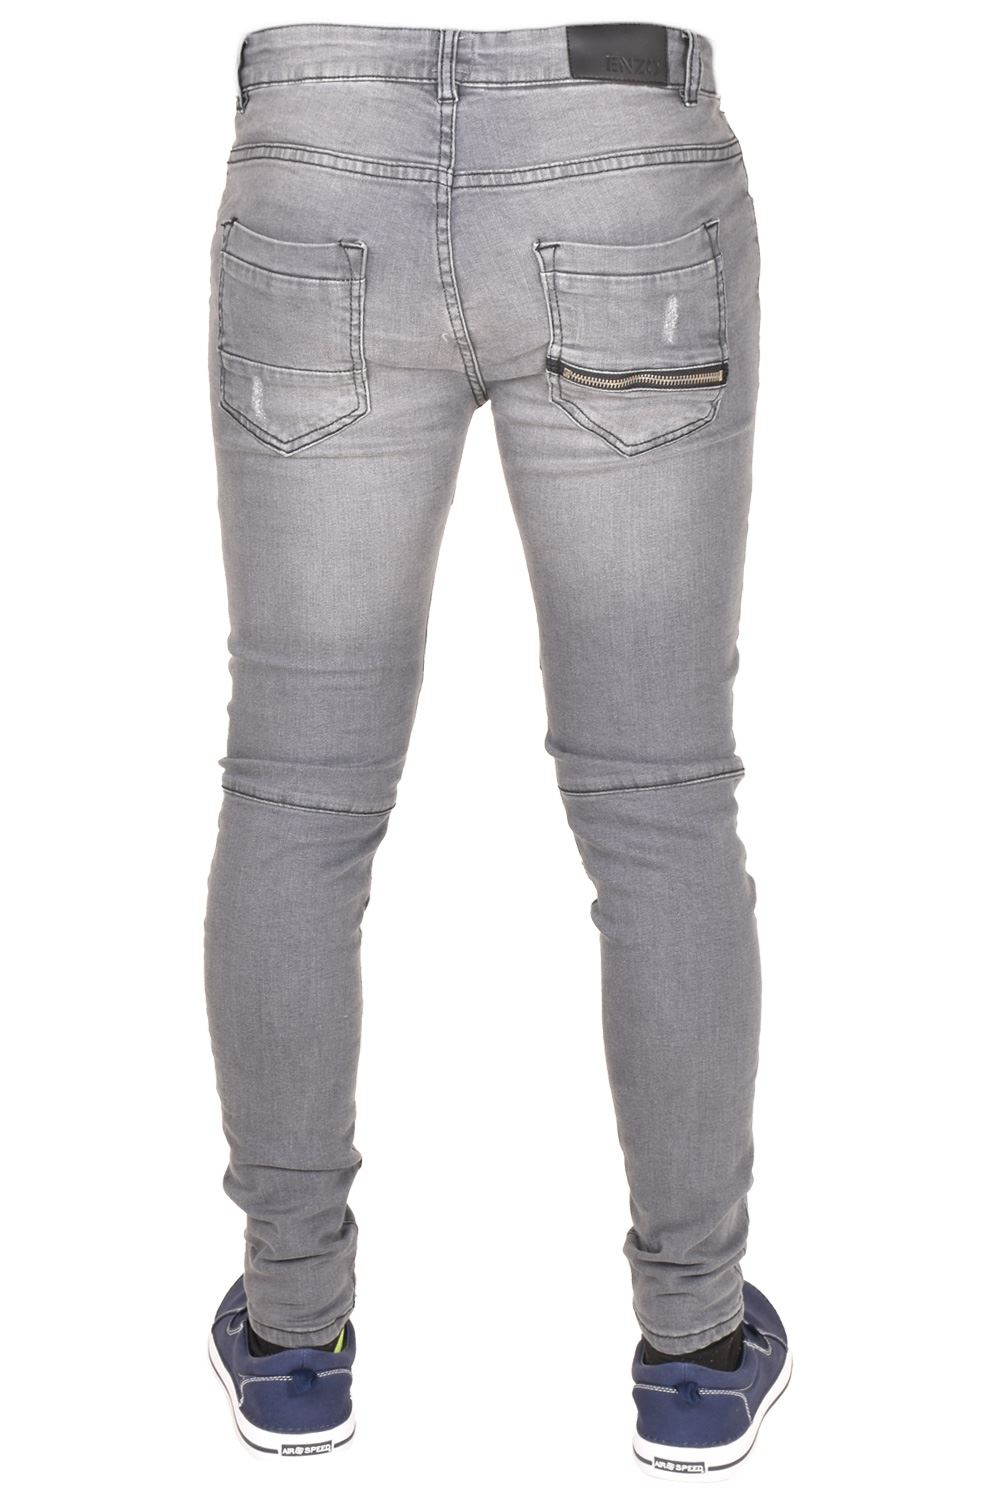 Enzo-Mens-Ripped-Jeans-Skinny-Slim-Fit-Denim-Pants-Casual-Trousers-Size-28-40 thumbnail 6